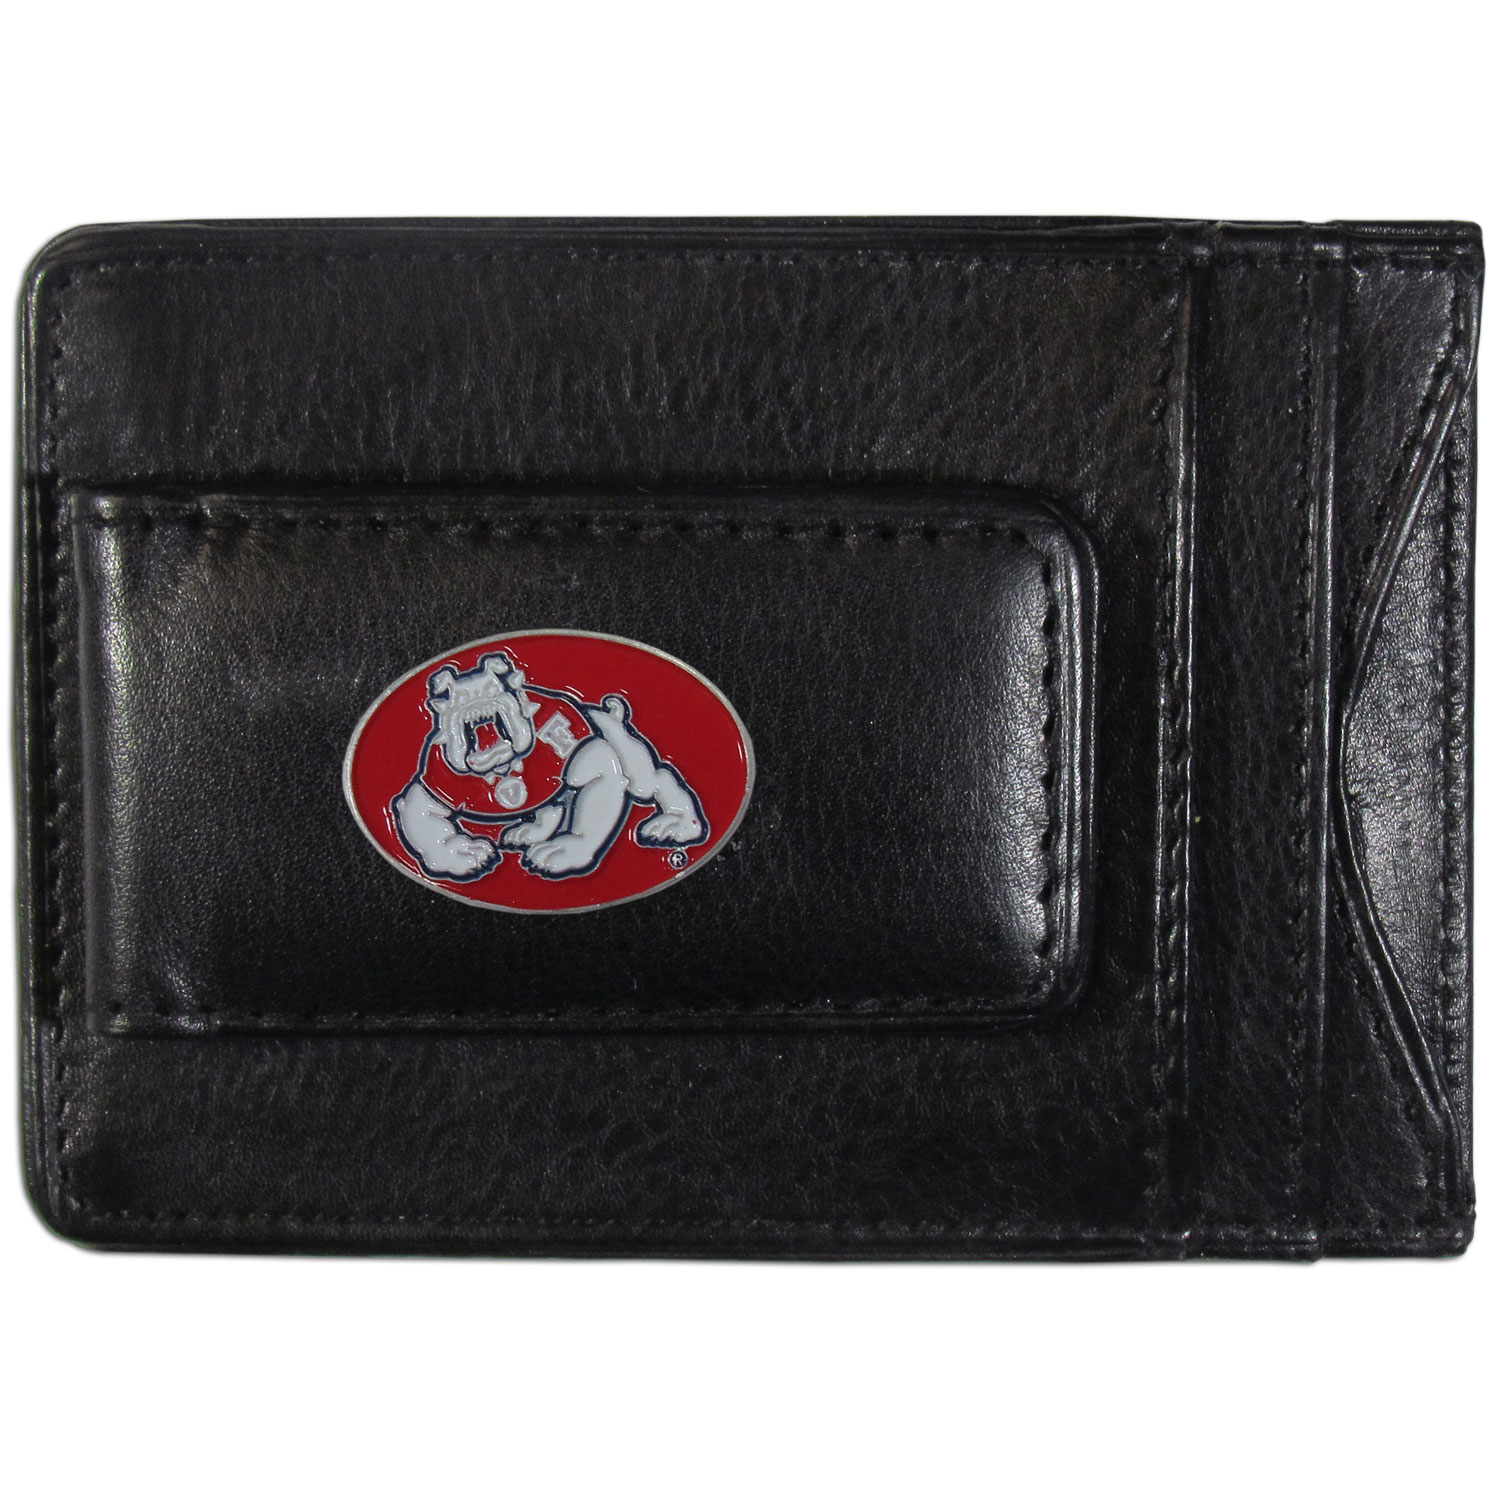 Fresno St. Bulldogs Leather Cash & Cardholder - Our Fresno St. Bulldogs genuine leather cash & cardholder is a great alternative to the traditional bulky wallet. This compact wallet has credit card slots, windowed ID slot and a magnetic money clip that will not damage your credit cards. The wallet features a metal team emblem.